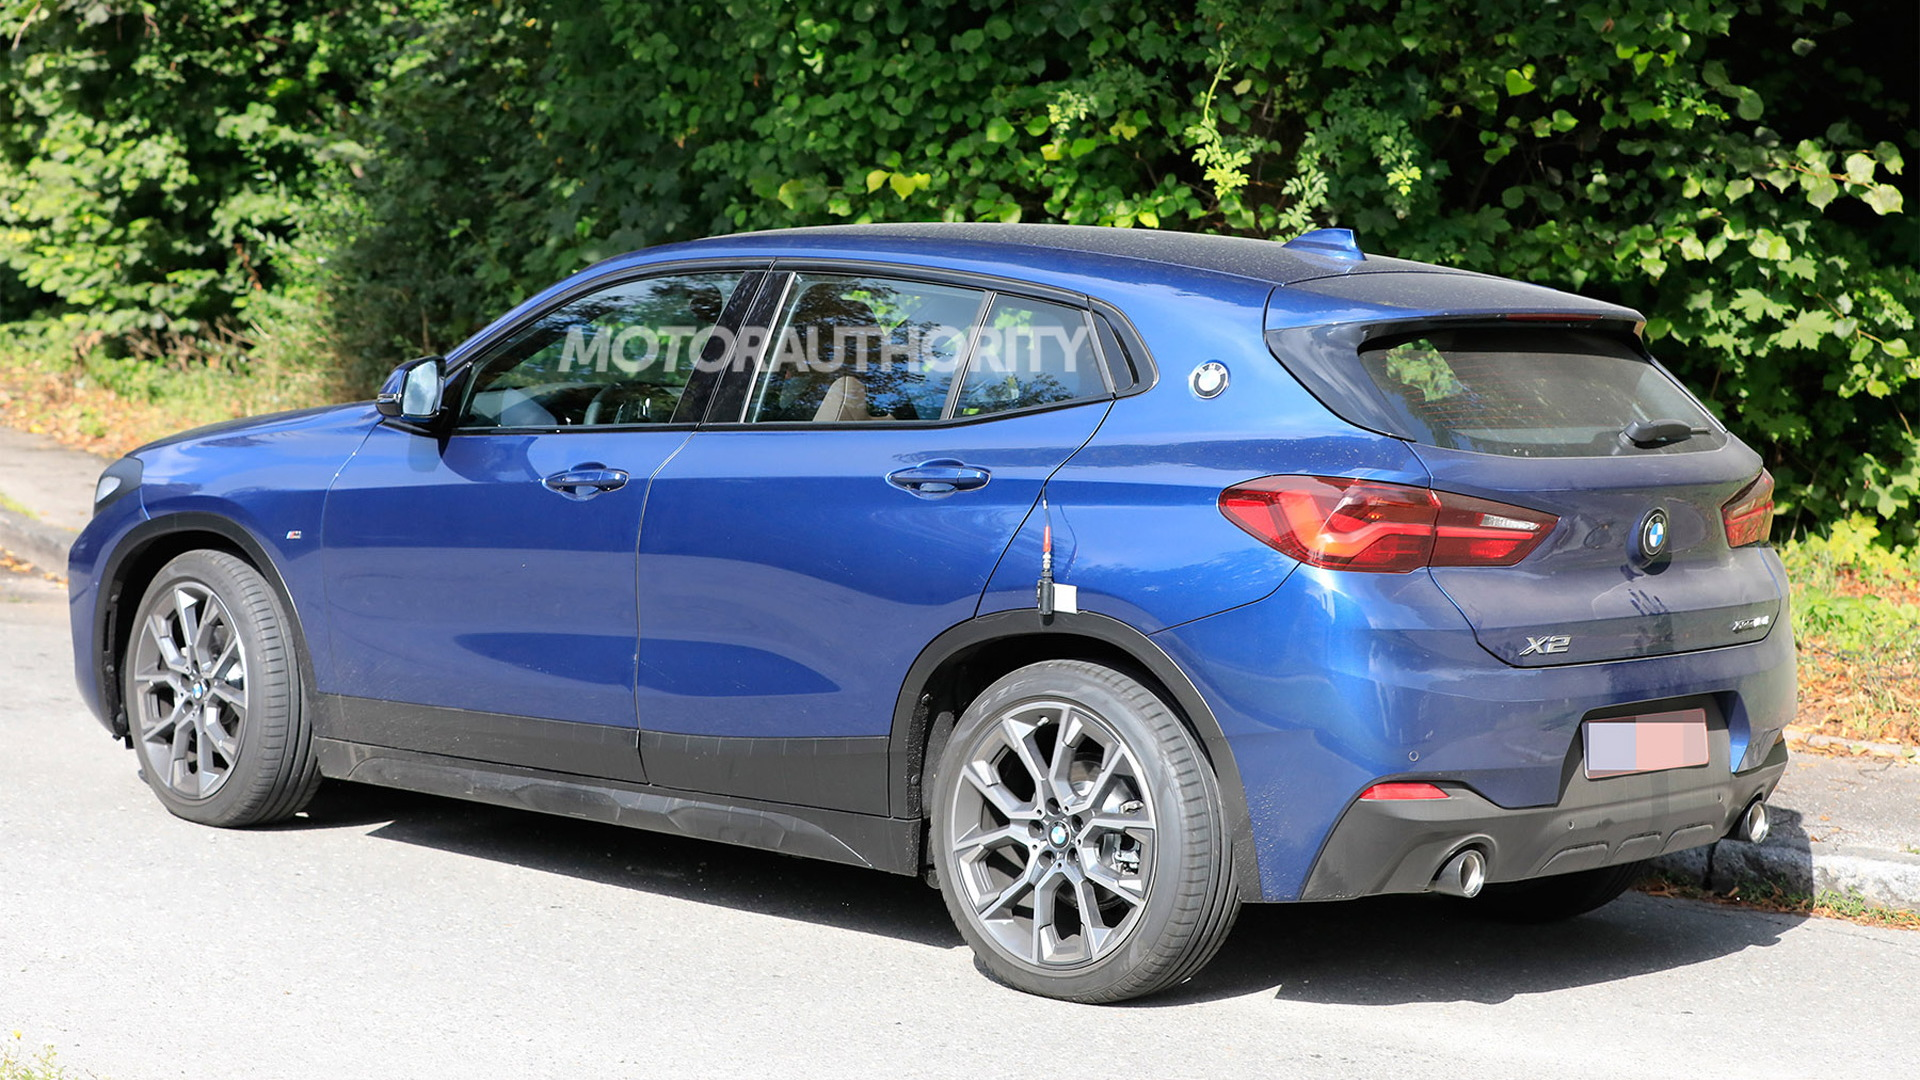 2022 BMW X2 facelift spy shots - Photo credit: S. Baldauf/SB-Medien